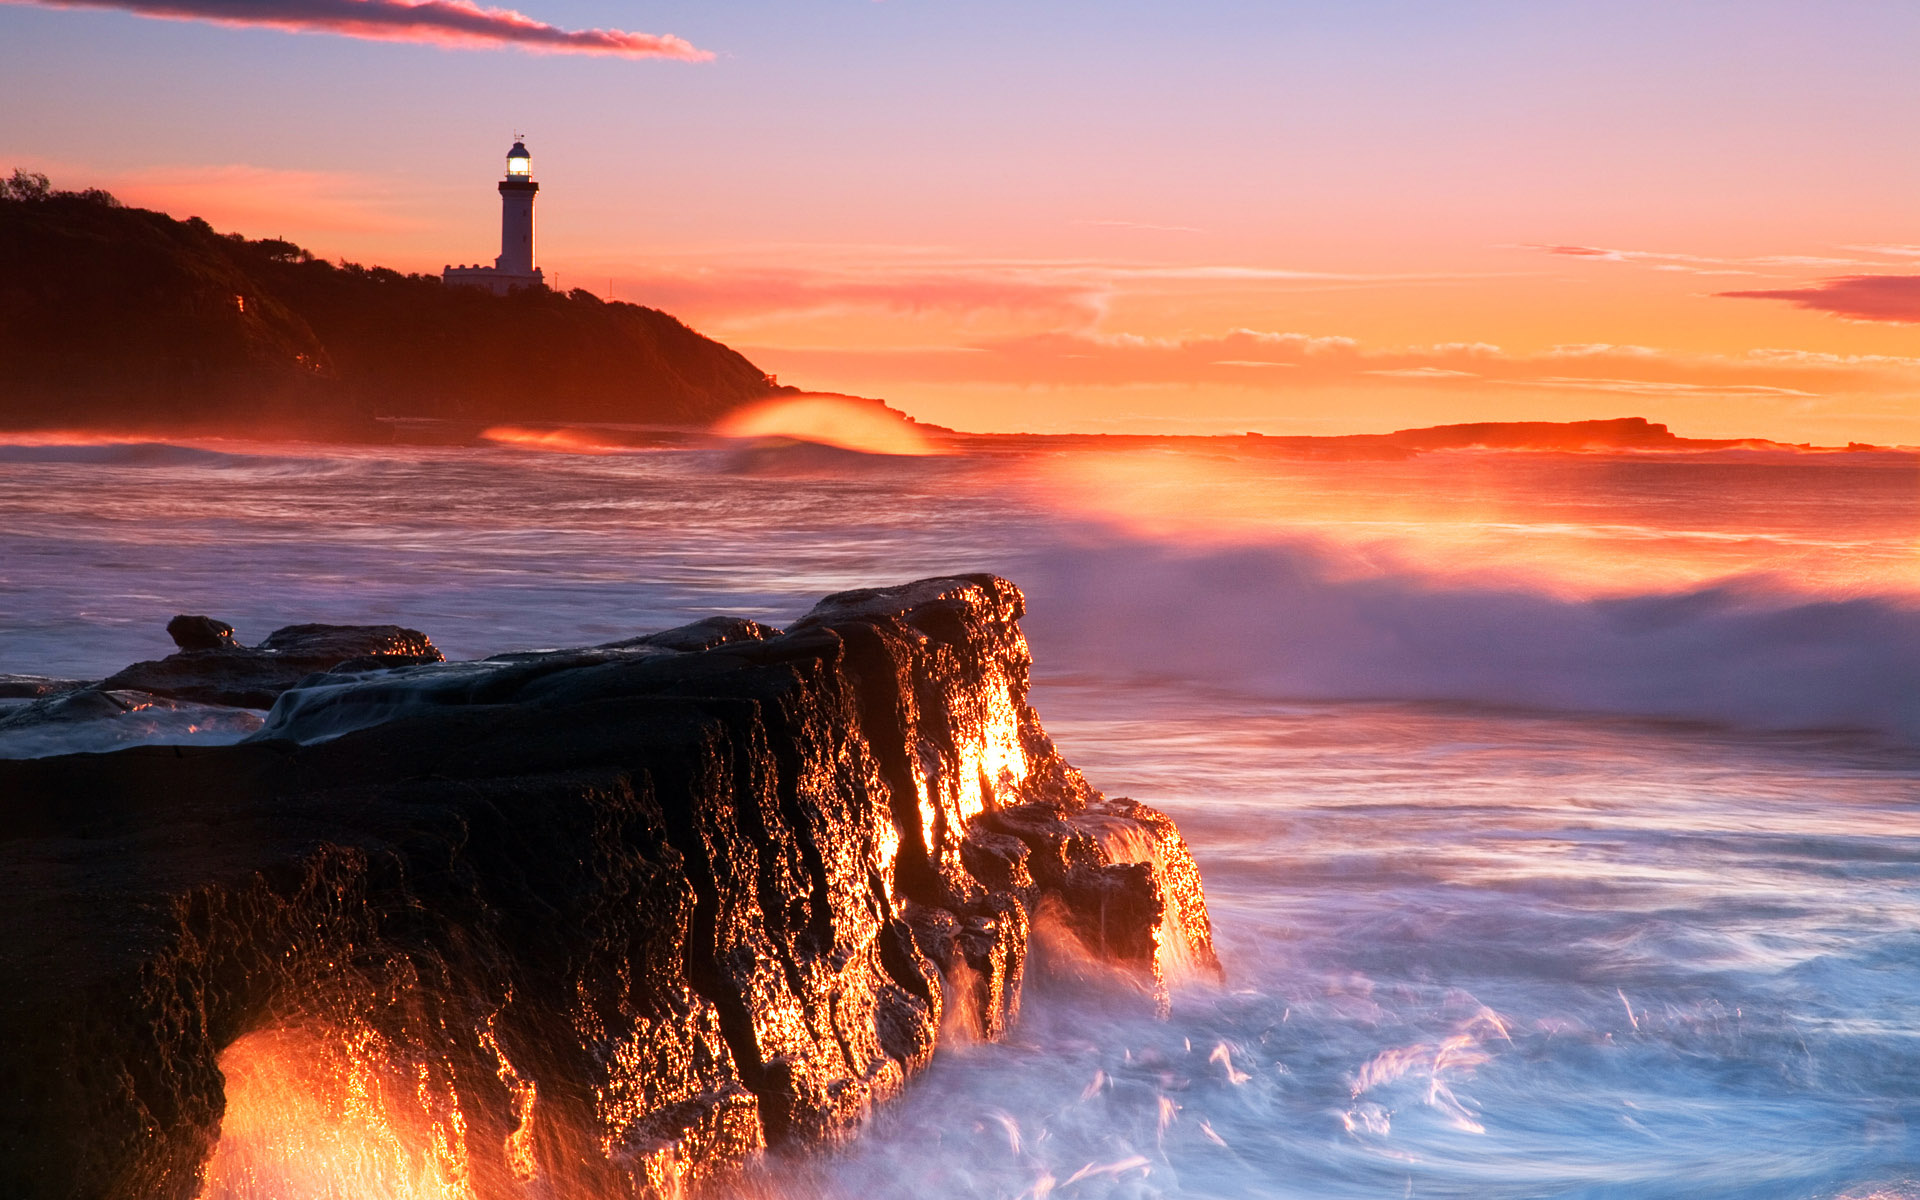 Man Made - Lighthouse  - Orange - Sunset - Ocean - Wave Wallpaper